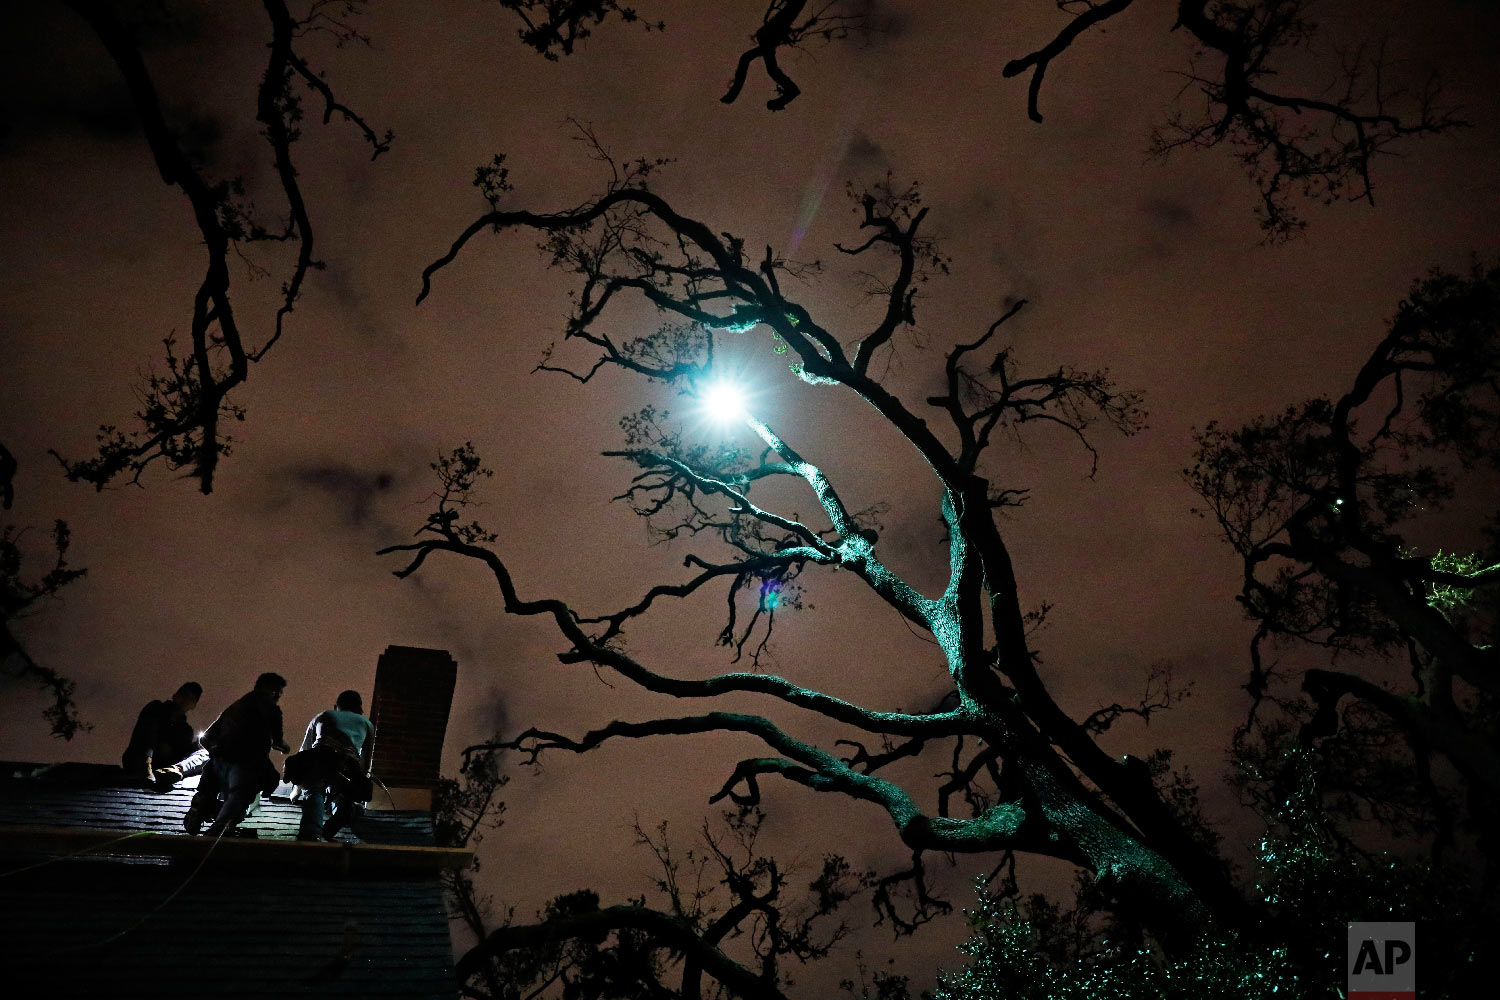 Workers repair a roof at night under trees left bare by Hurricane Michael in Panama City, Fla, Tuesday, Jan. 22, 2019. (AP Photo/David Goldman)